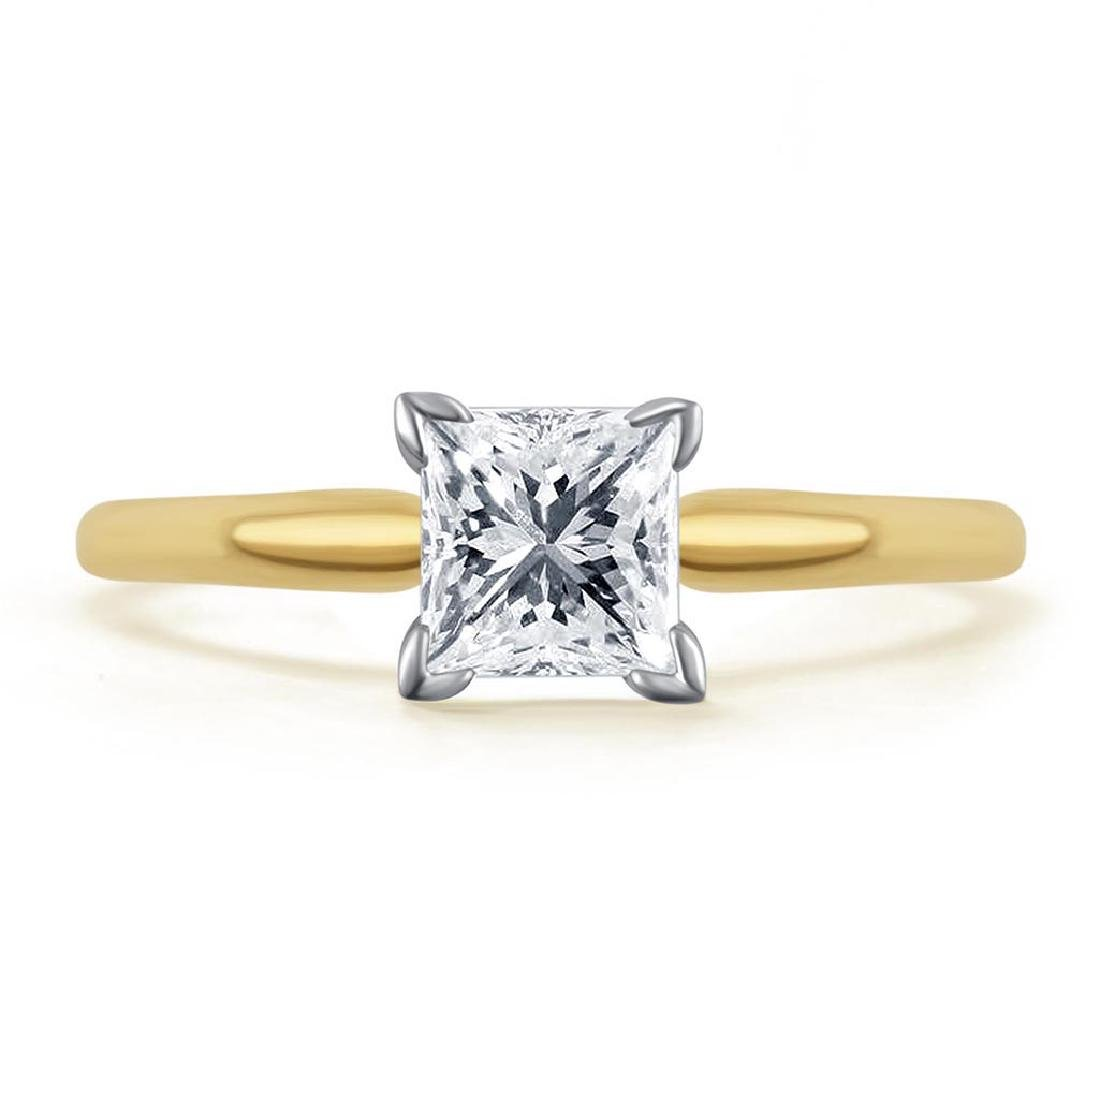 CERTIFIED 0.84 CTW PRINCESS F/I1 SOLITAIRE RING IN 14K